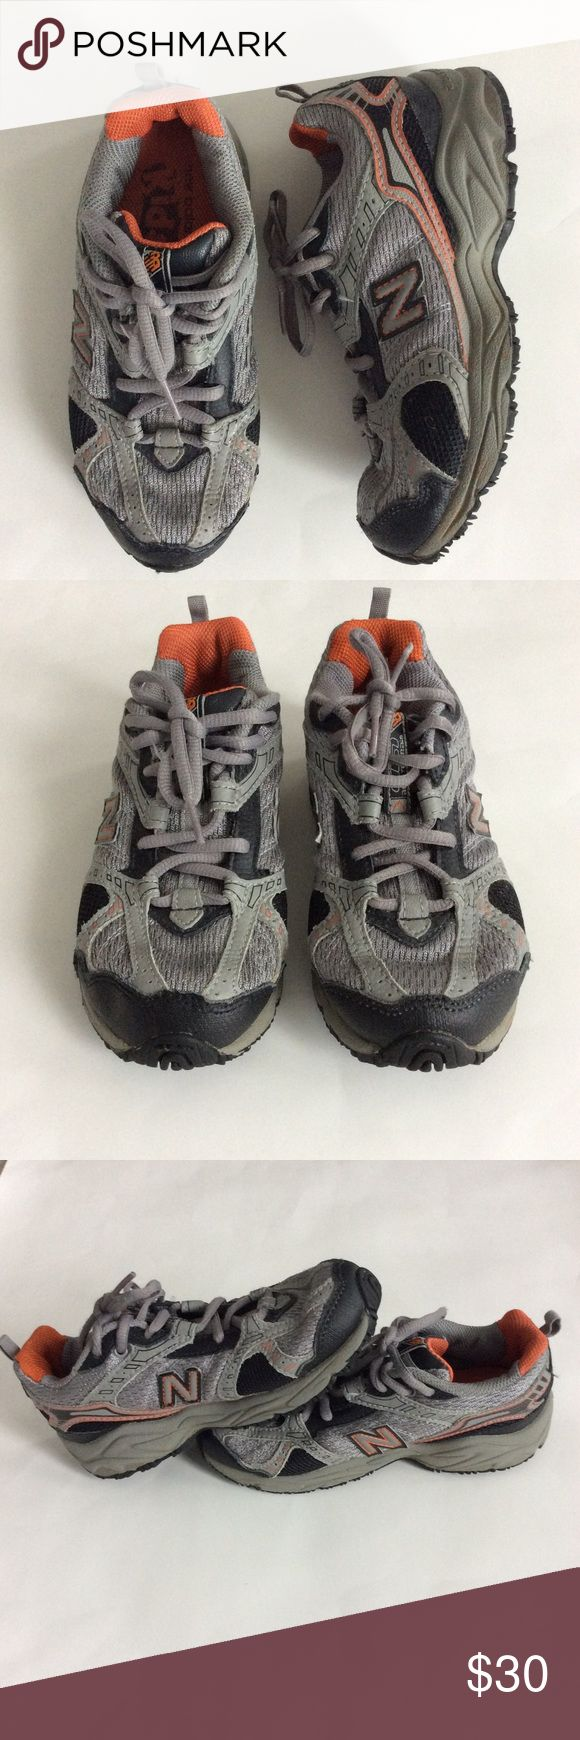 👫New Balance All Terrain Tennis Shoes New Balance All Terrain Tennis Shoes. Grey, black, orange colors. Lace up. Size 1 Kids. Great condition with normal wear. New Balance Shoes Sneakers